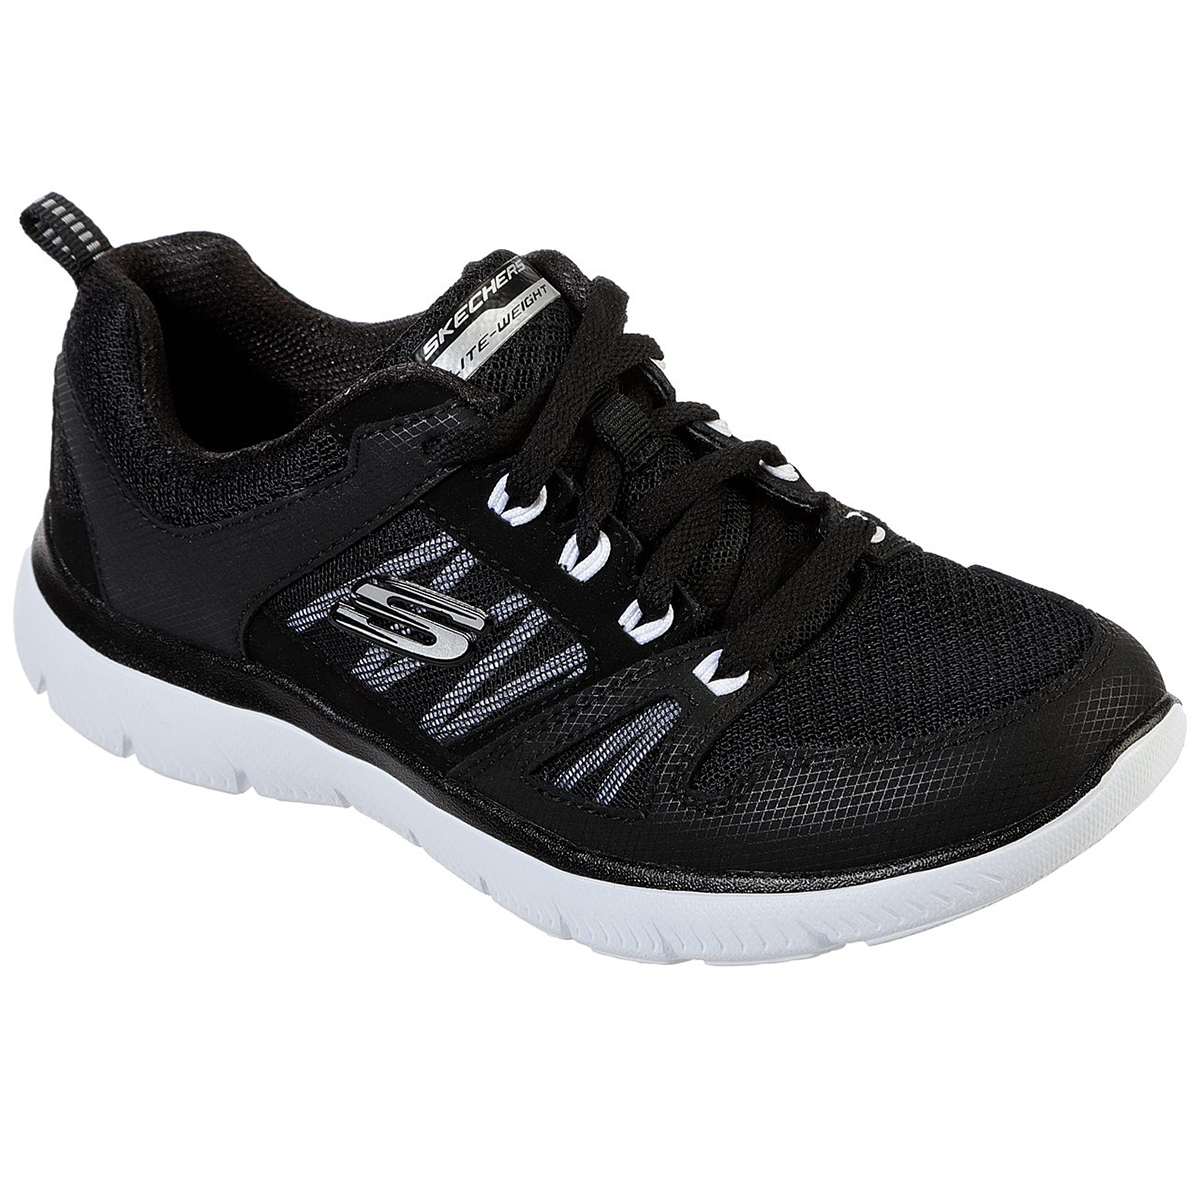 Skechers Women's Summits New World Sneakers - Black, 7